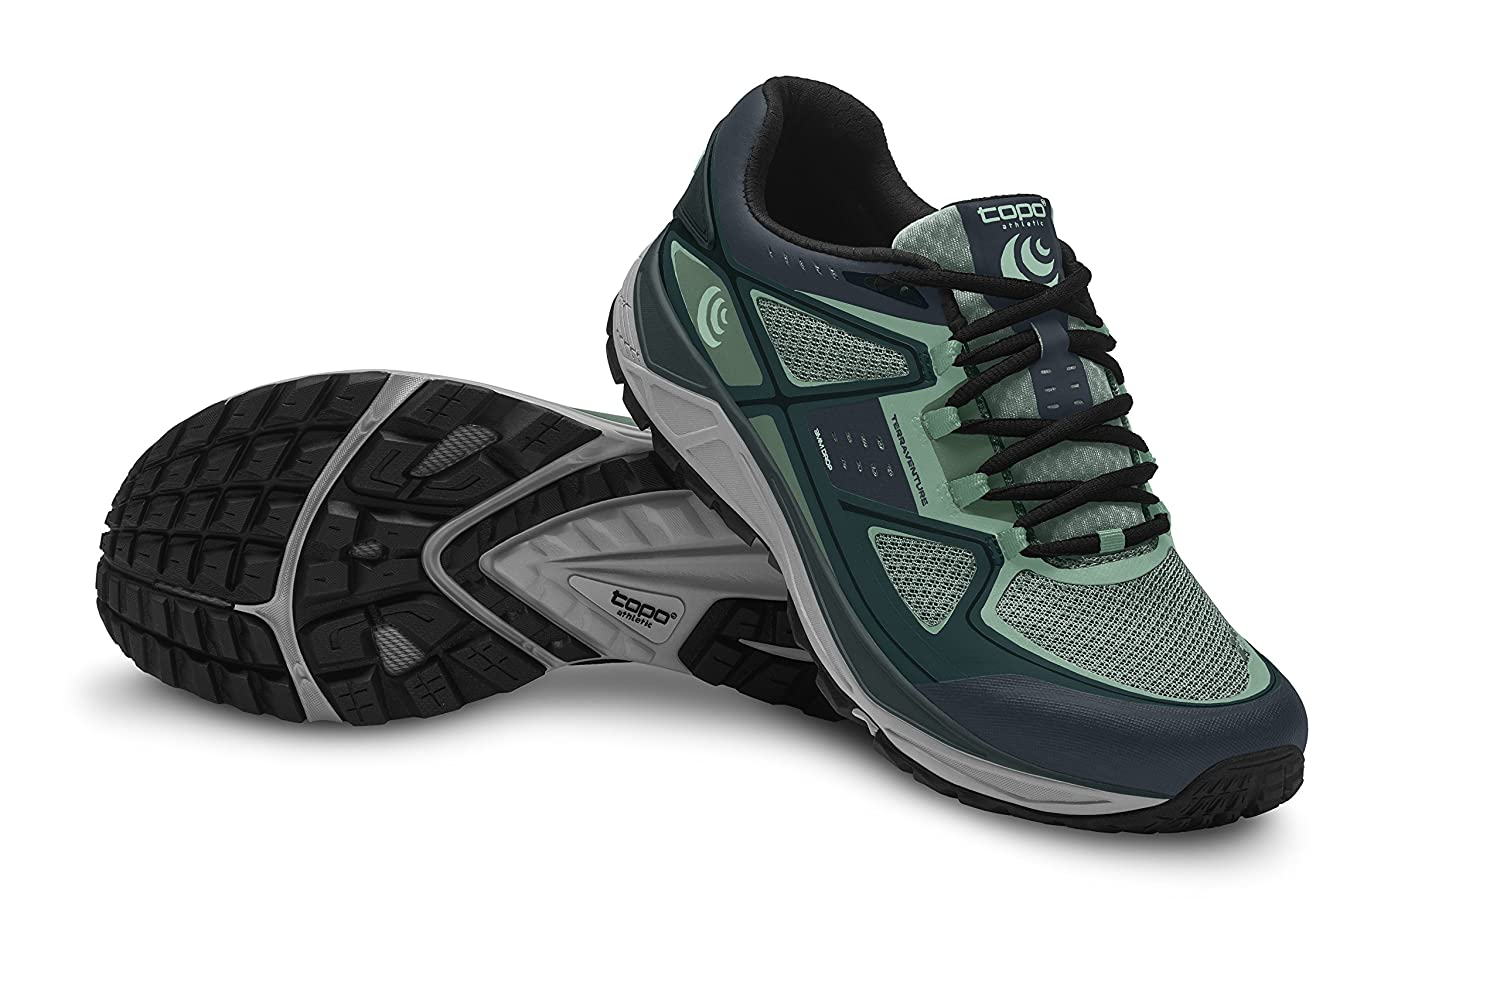 Topo Athletic Terraventure Running Shoe - Women's B01LY1HA7A 9.5 B(M) US|Teal/Mint